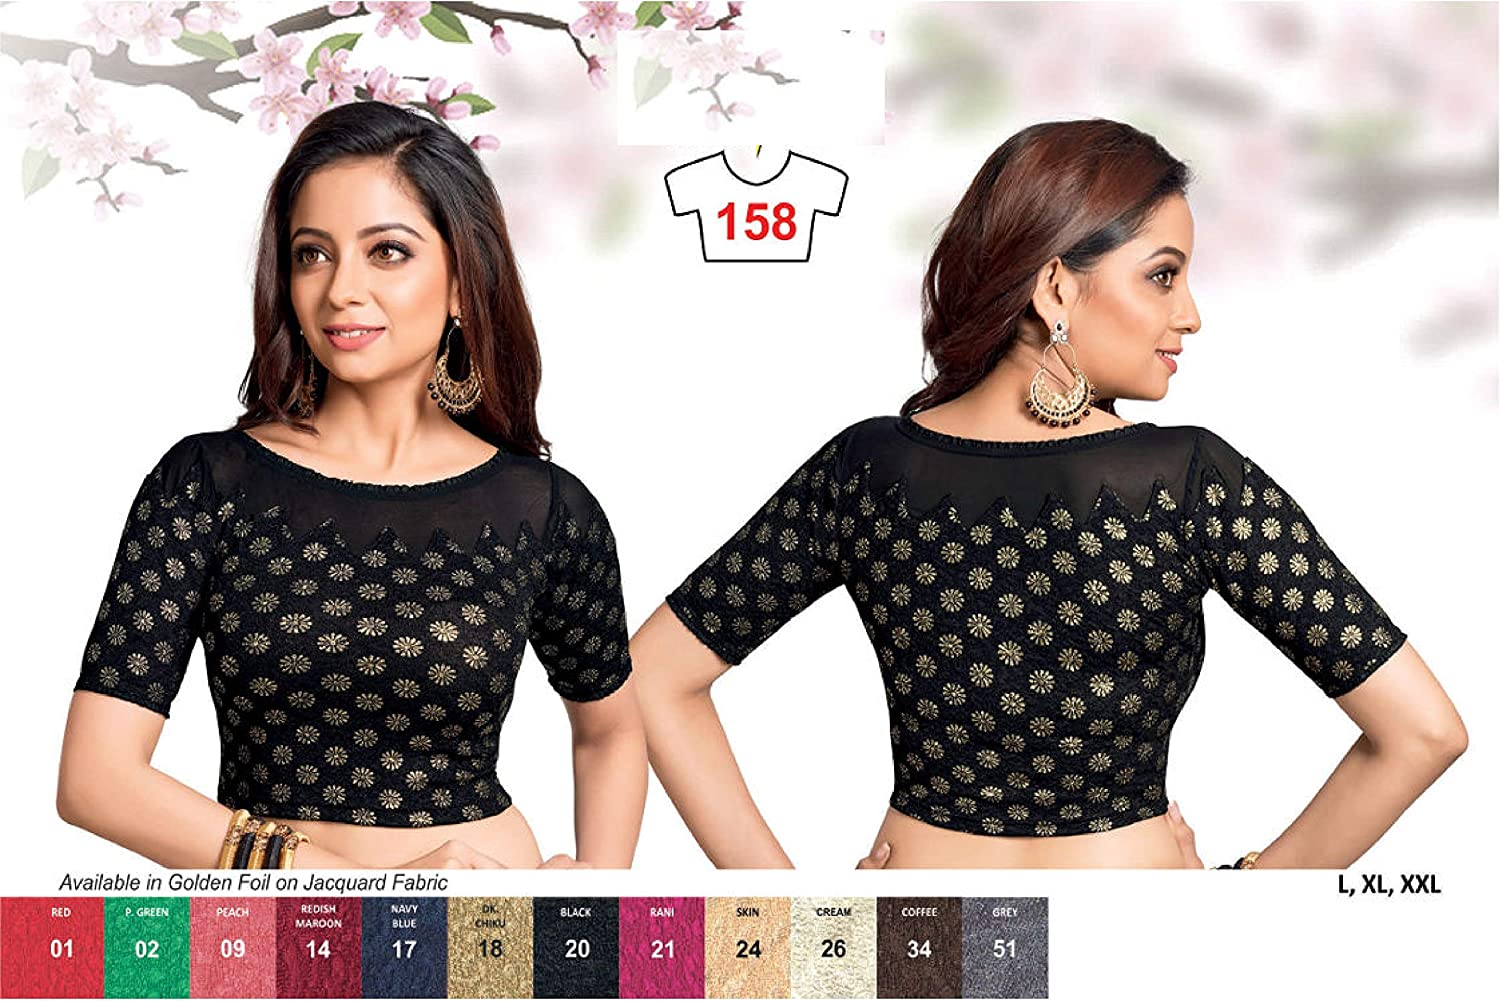 Stitched Designer Blouse Black Stretchable Fabric Readymade Saree Blouse Choli Top Tunic For Women Party wear,Daily Wear,Casual Wear